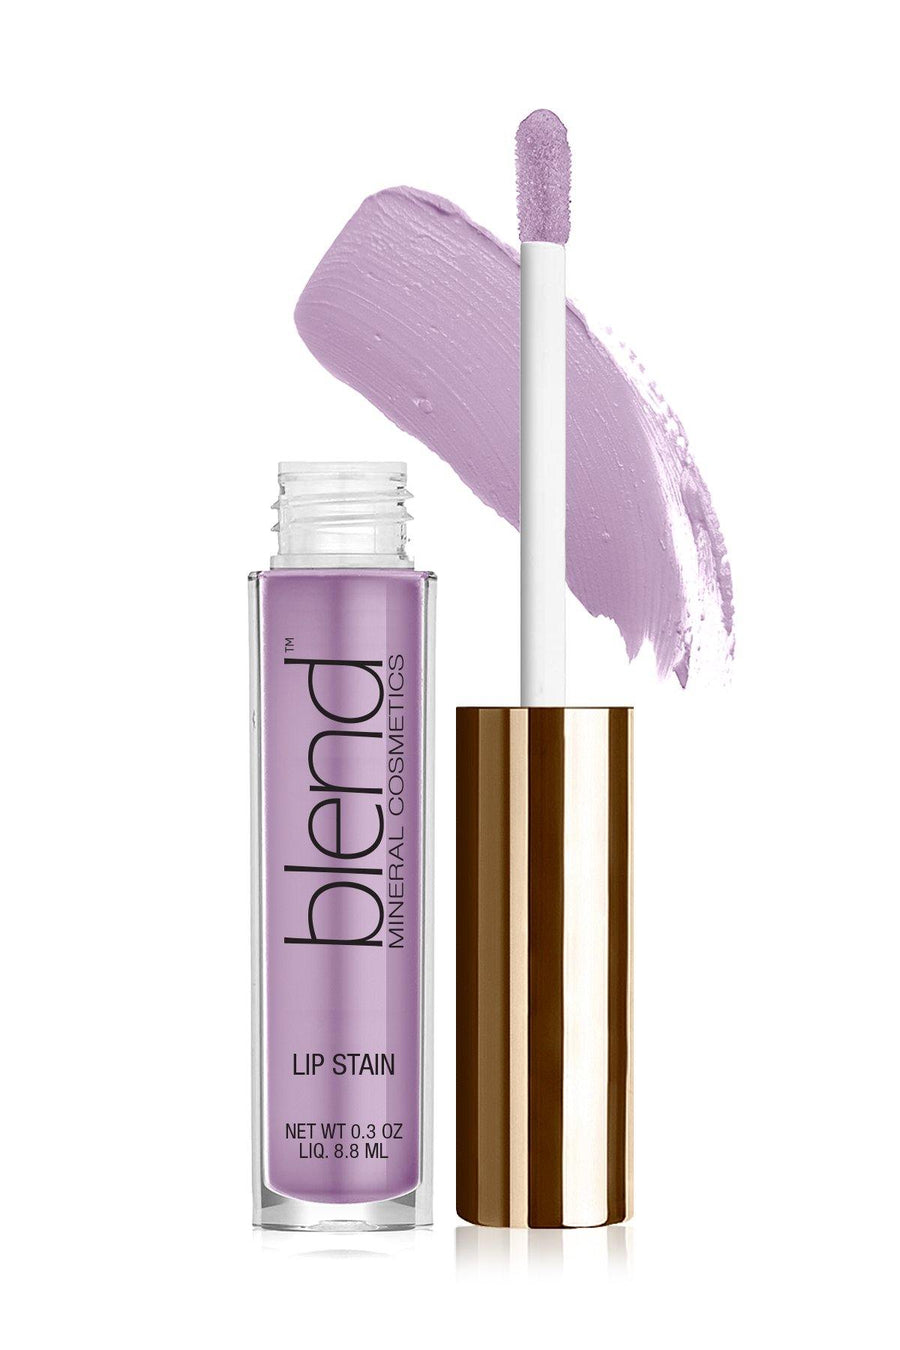 Lip Stain 11 - Light Mauve - Blend Mineral Cosmetics